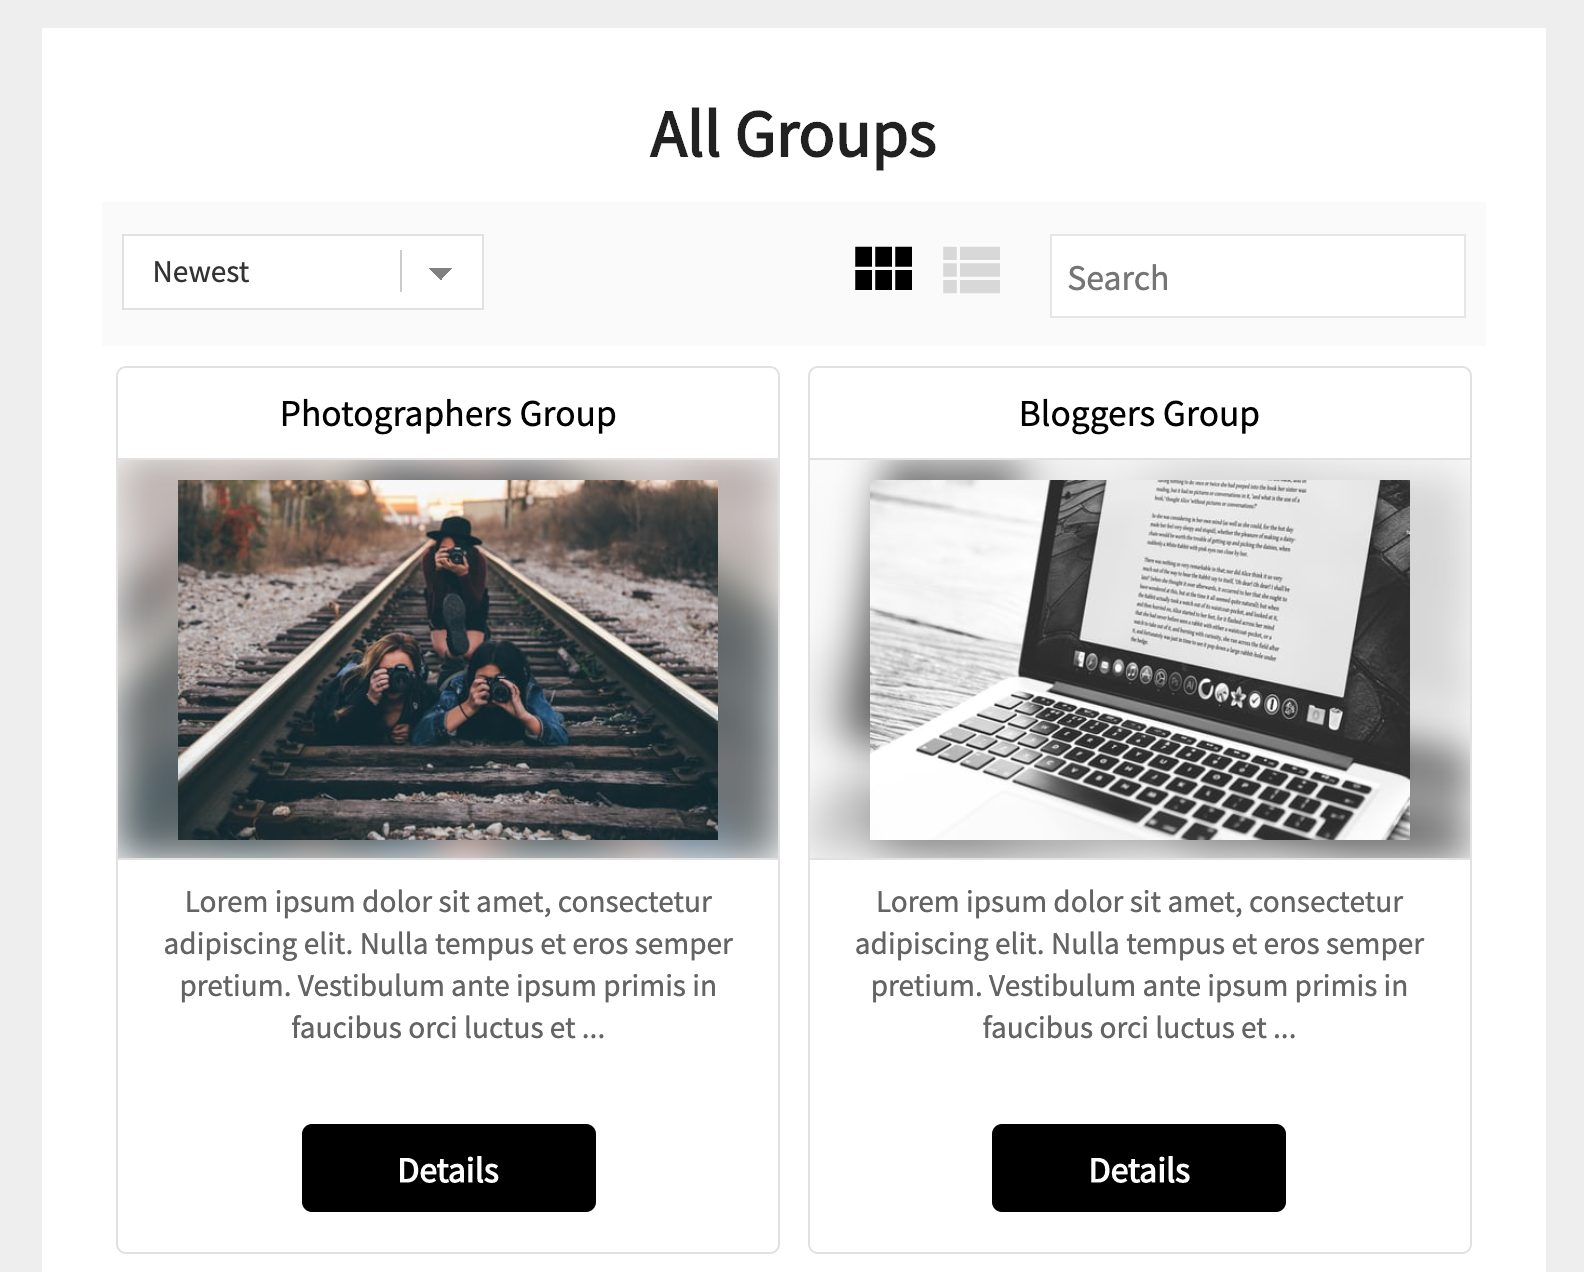 All groups